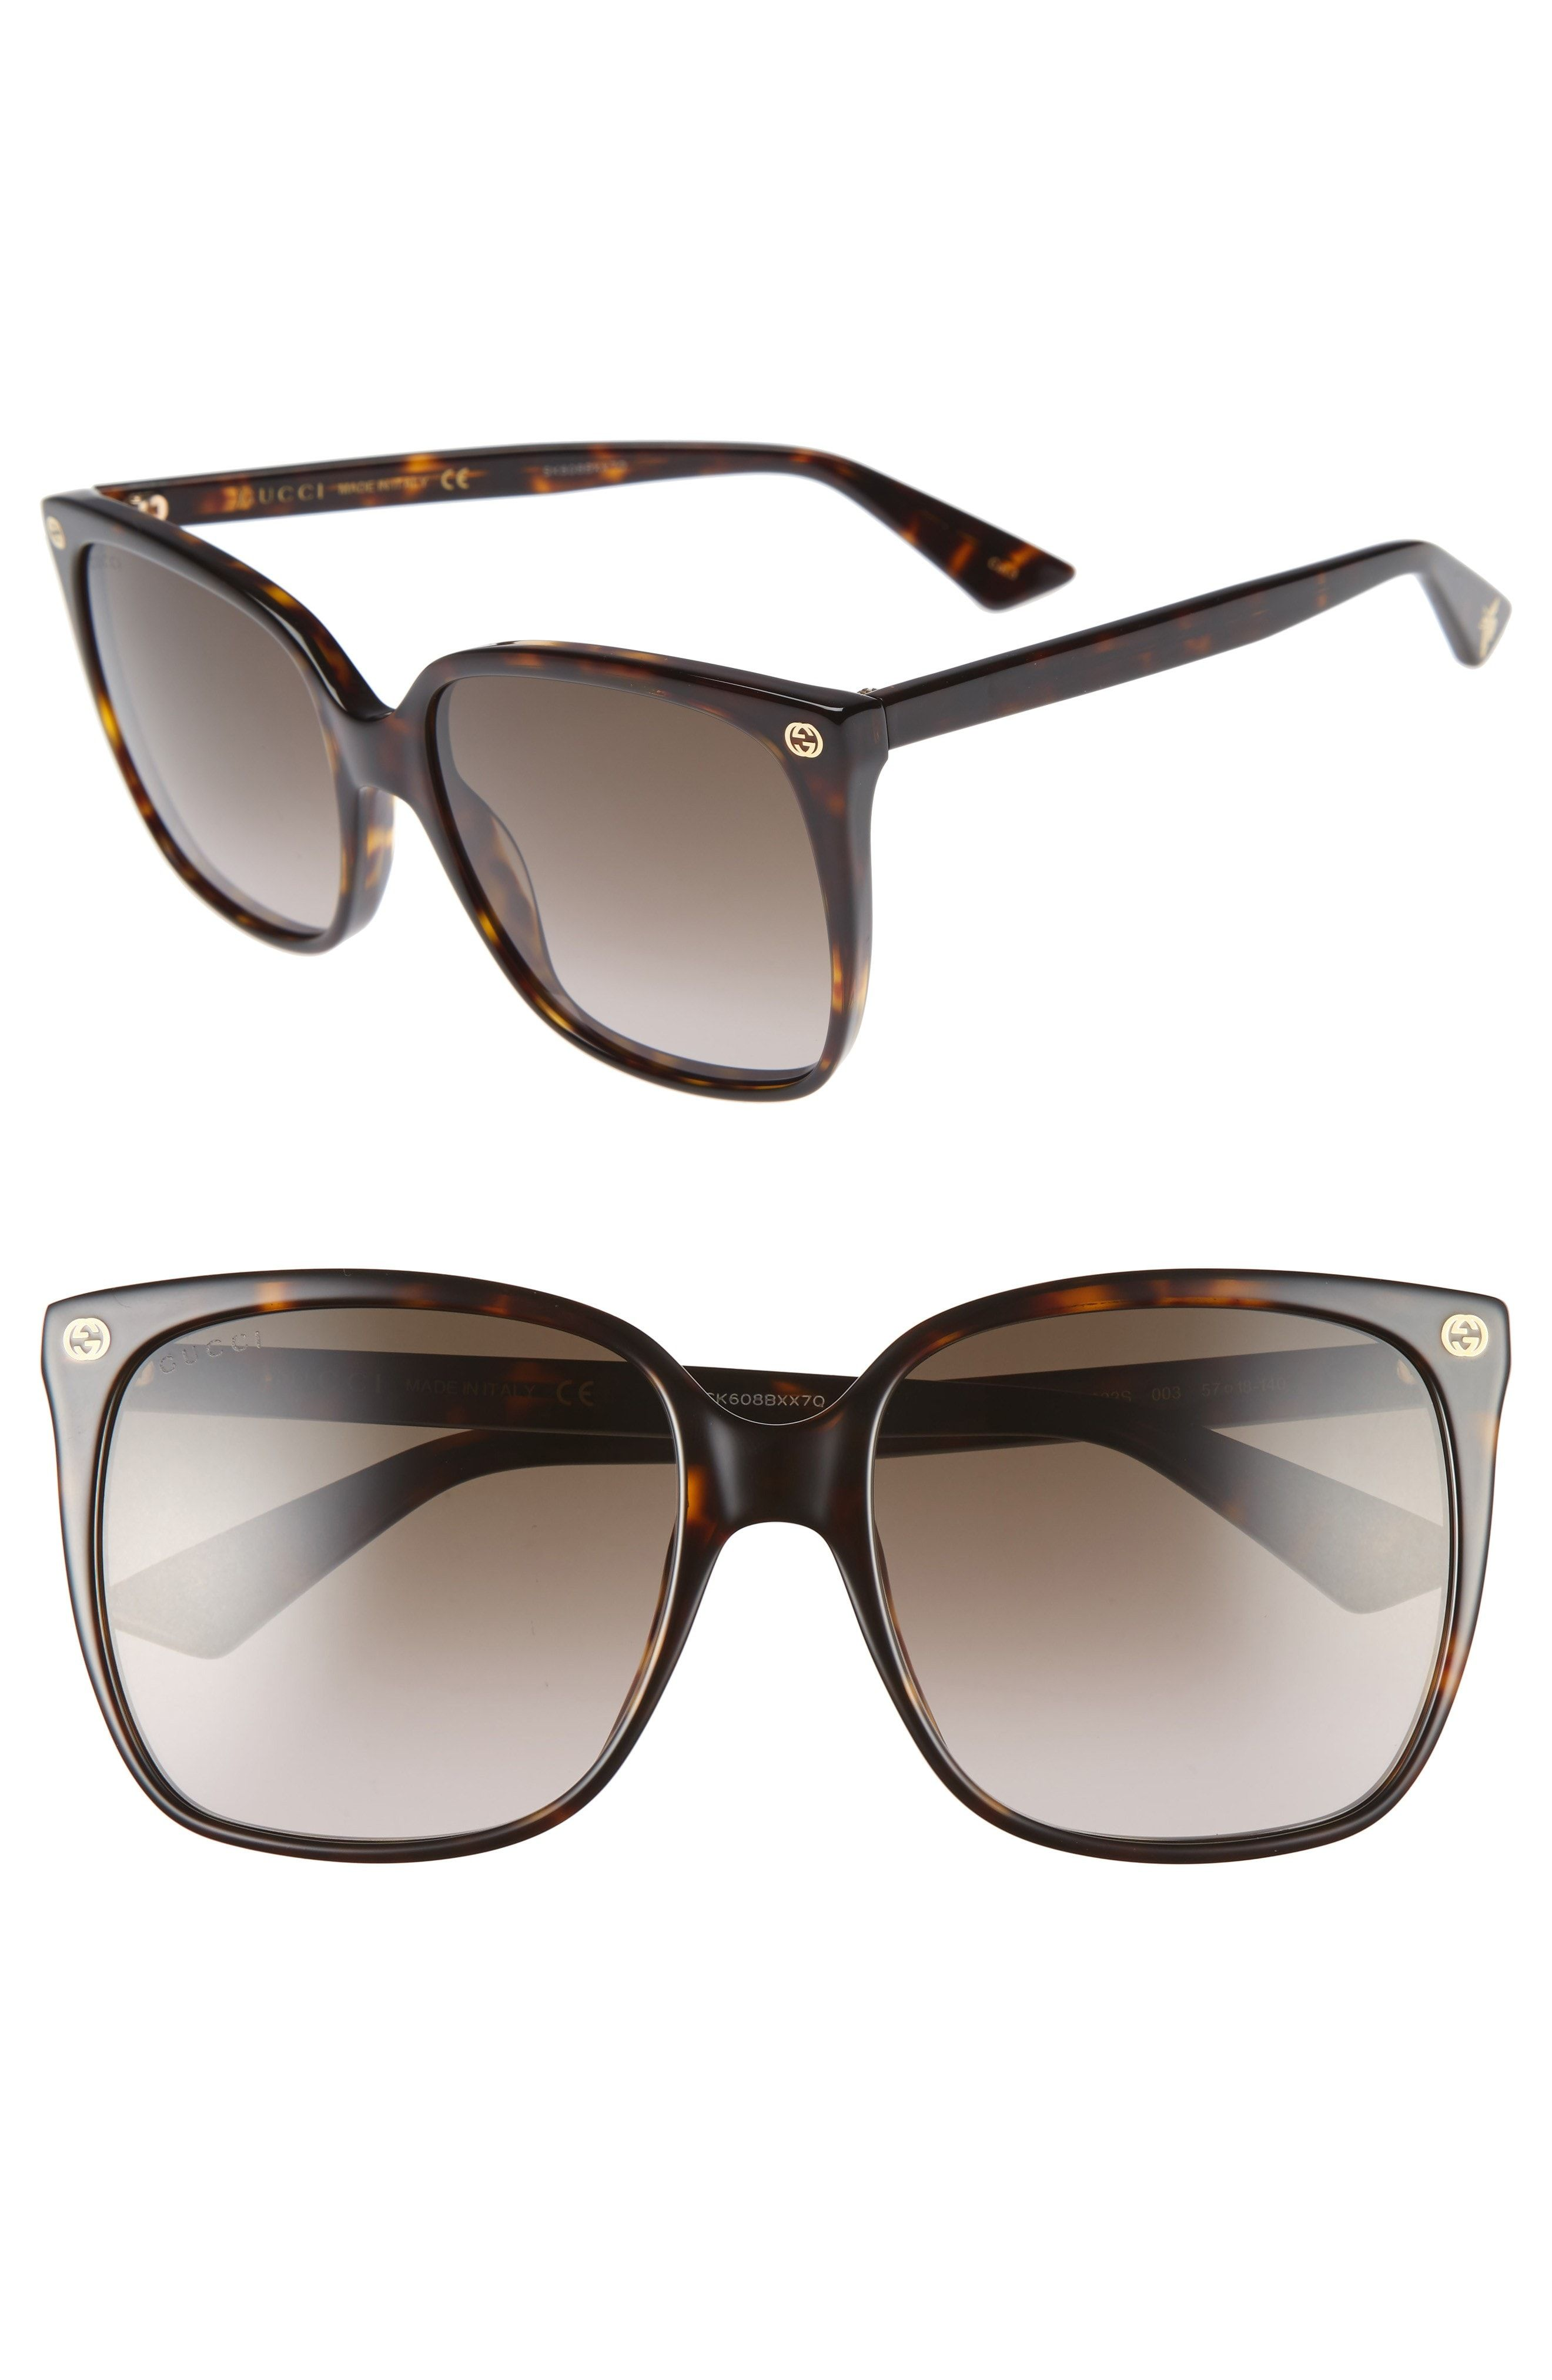 377f452fe63f8 GUCCI 57MM SQUARE SUNGLASSES - HAVANA  BROWN